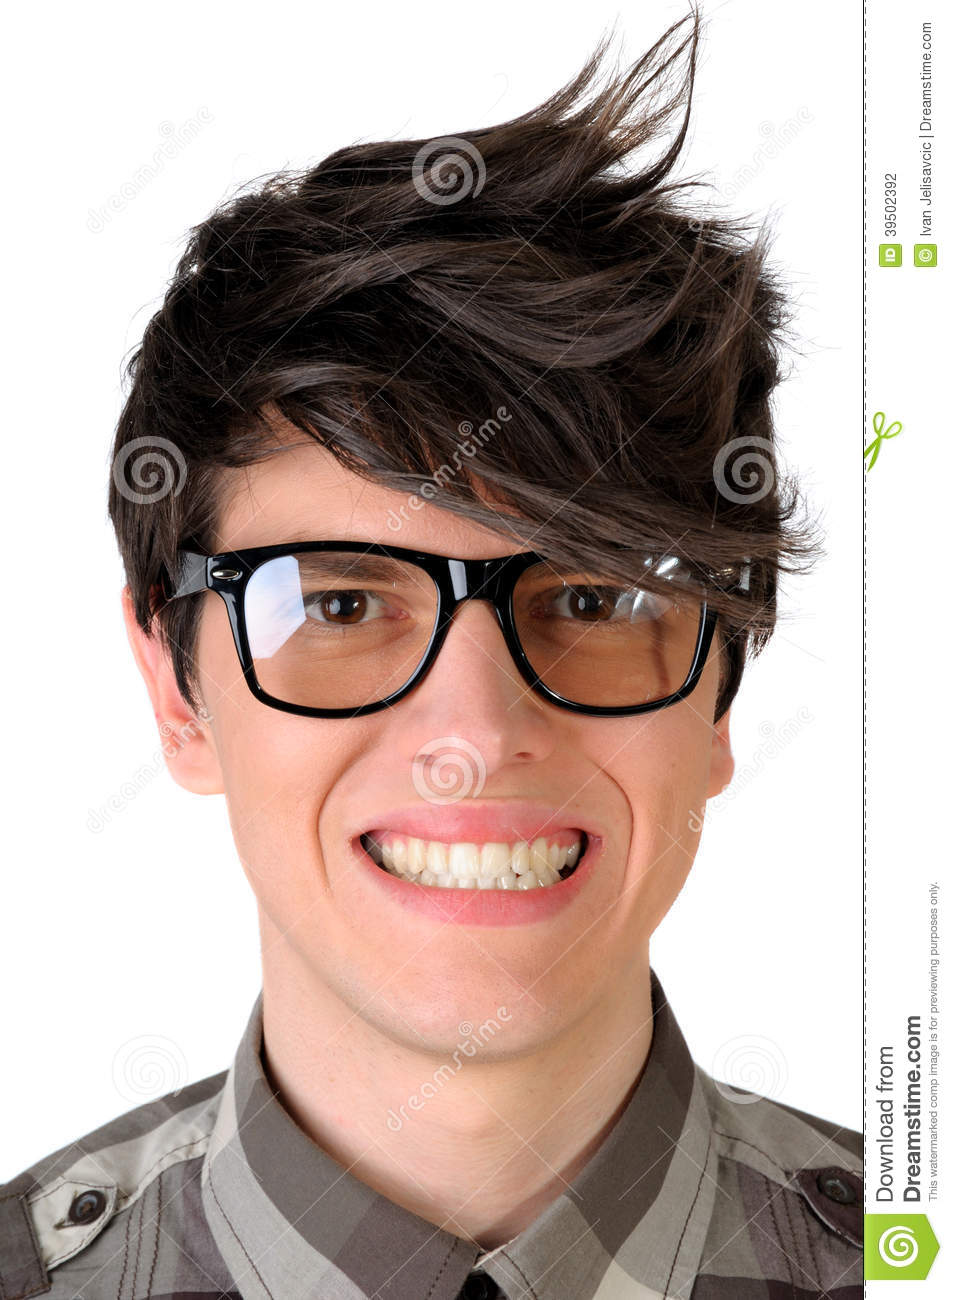 Closeup of a nerdy office worker faking a smile, isolated on white